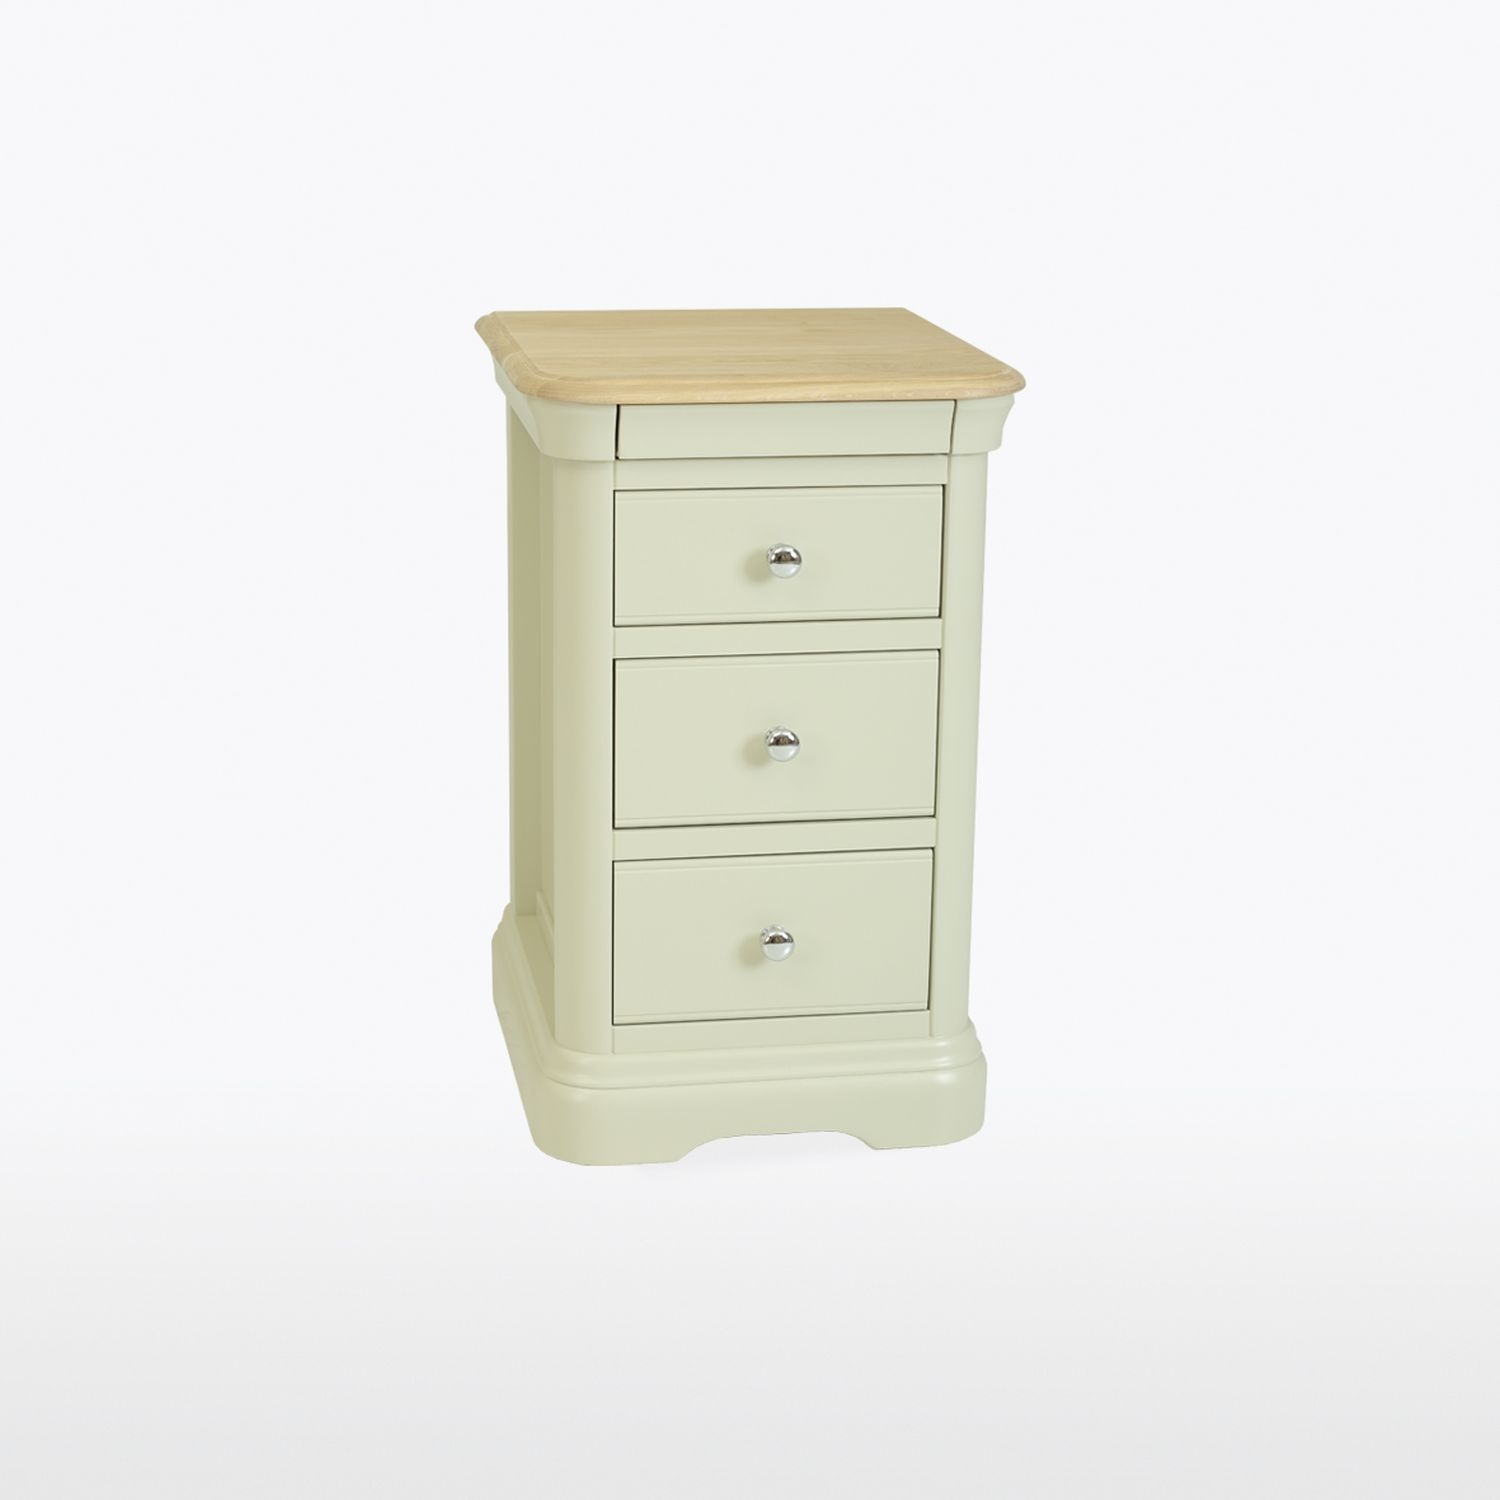 Image of Casa Cherbourg 3 Drawer Bedside Chest